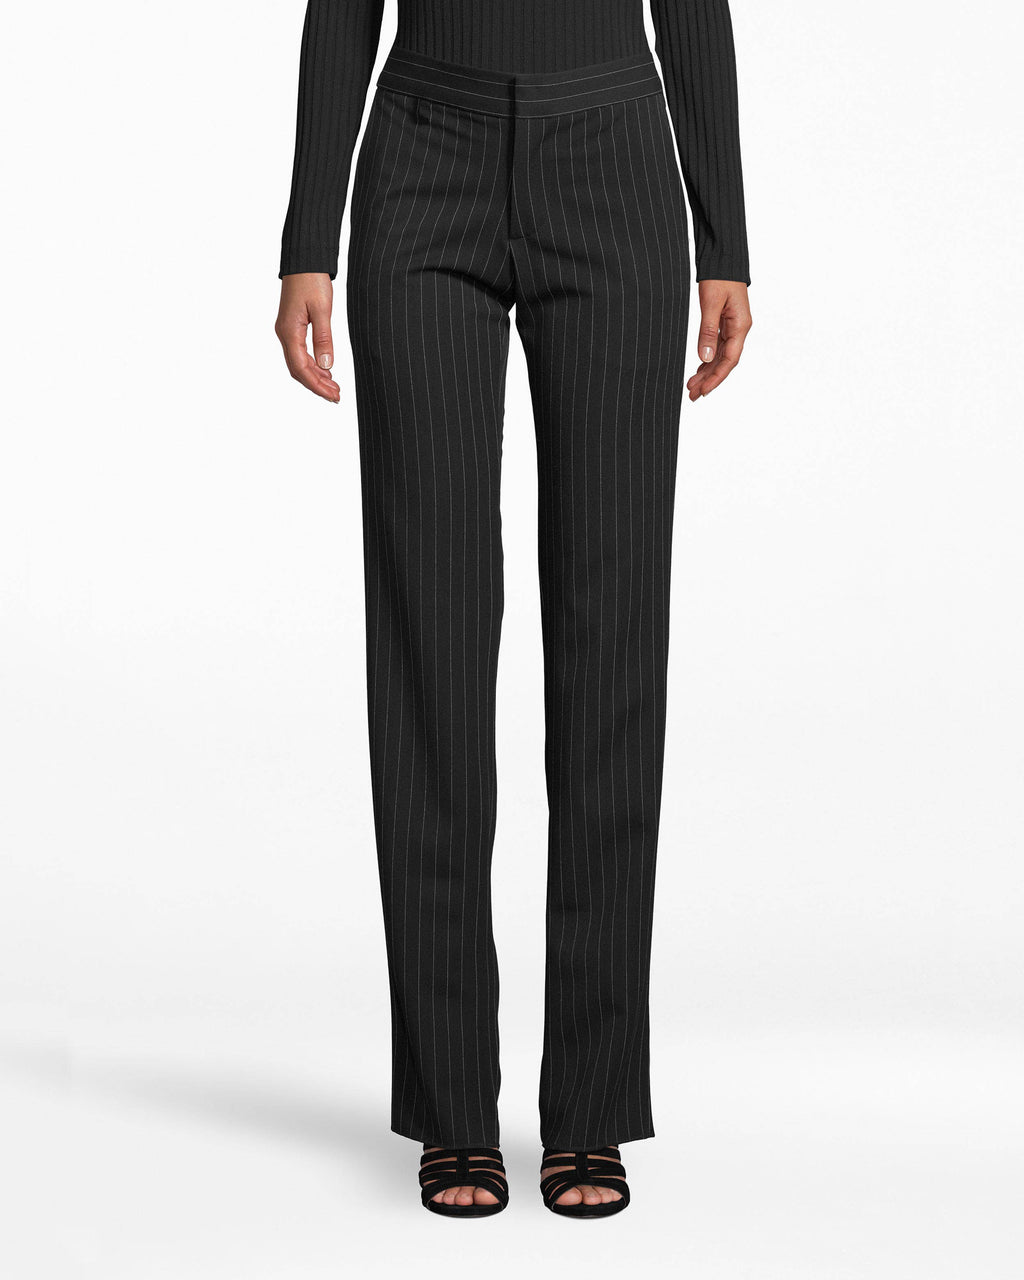 BC10301 - GANGSTER STRIPE PANT - bottoms - pants - Workwear streamlined. These straight-cut dress pants showcase our running Gangster Stripe and fit comfortably (yet fitted) on your body. The leg hem falls below the ankle.